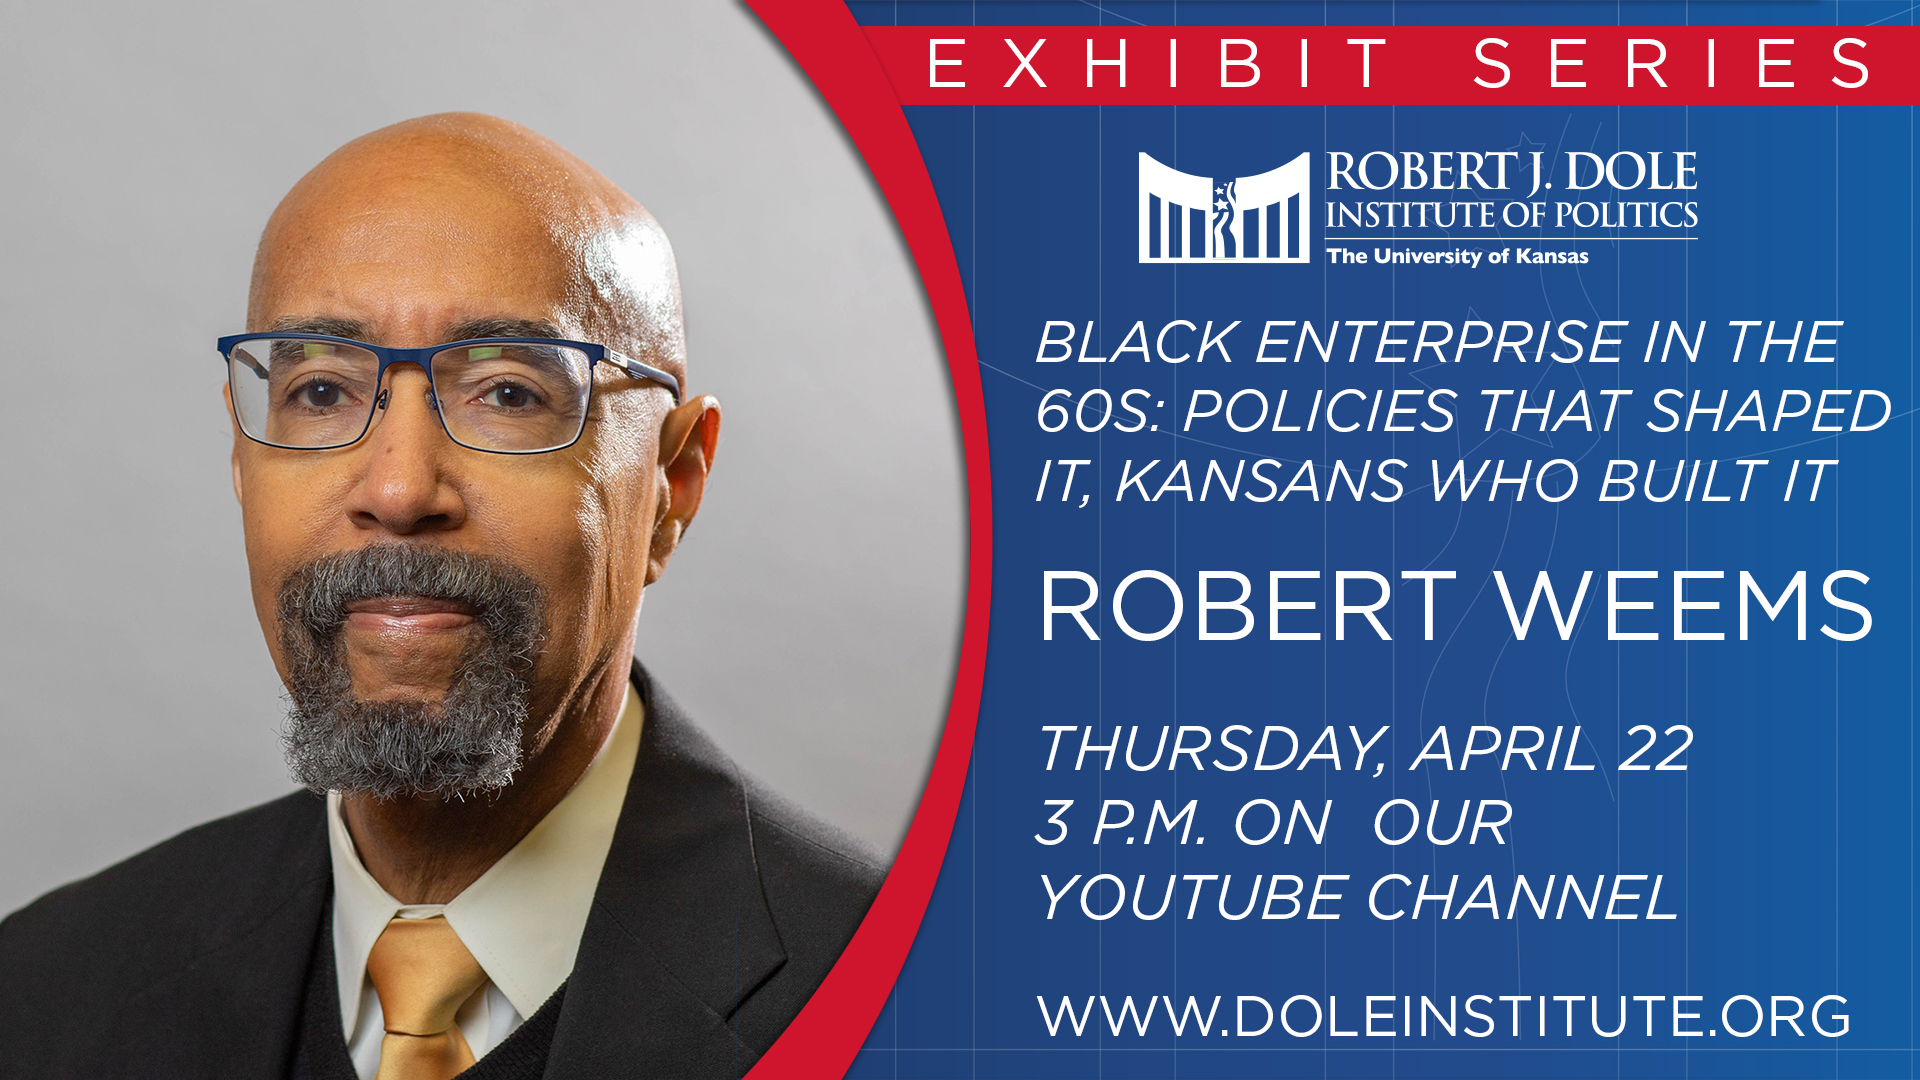 Black Enterprise in the 60s: Policies That Shaped It, Kansans Who Built It Event Image